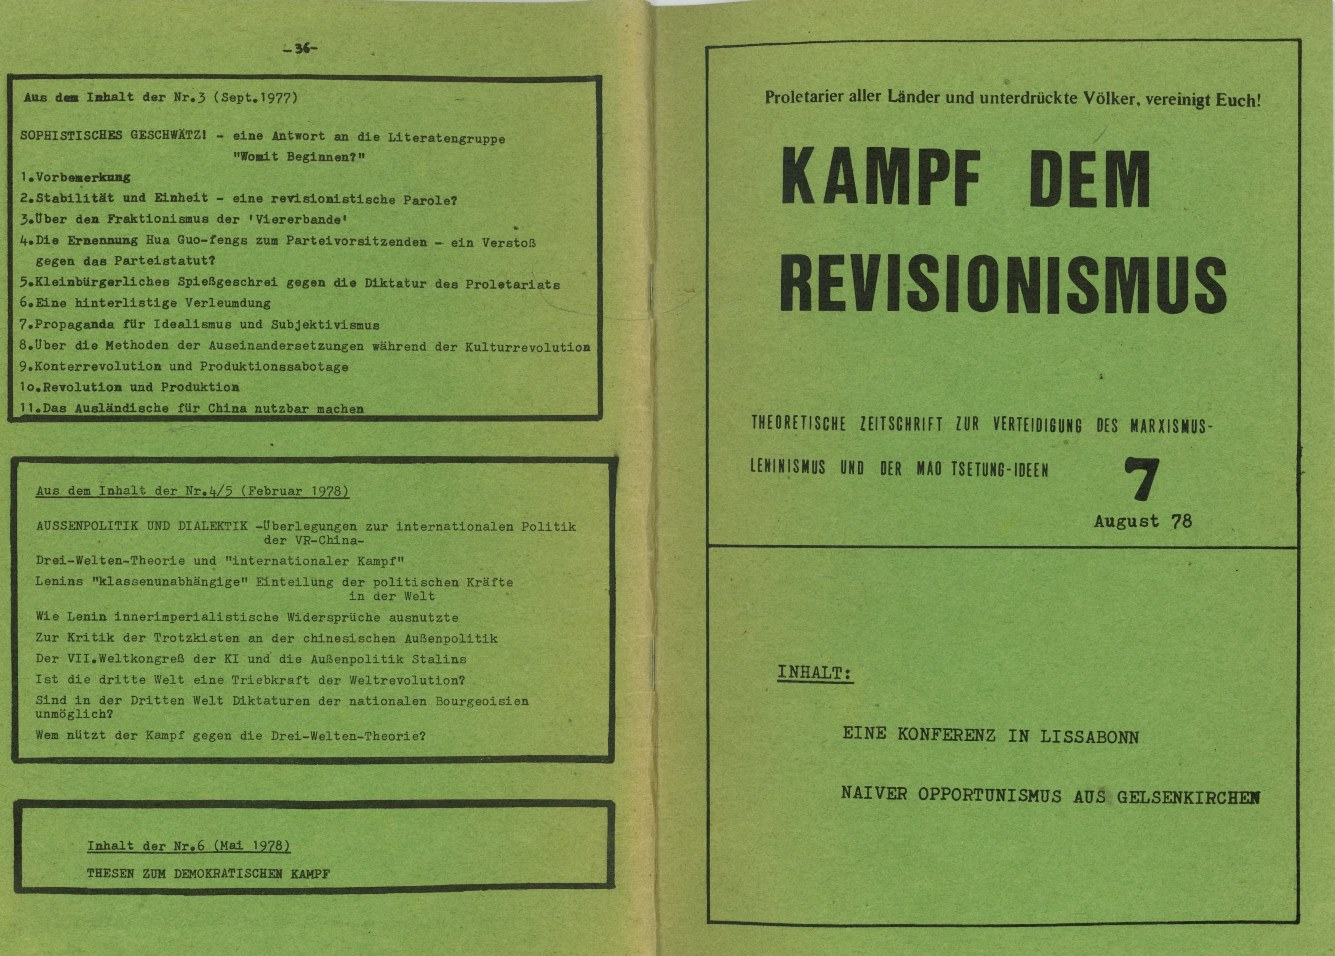 Muenchen_Kampf_dem_Revisionismus_1978_07_01